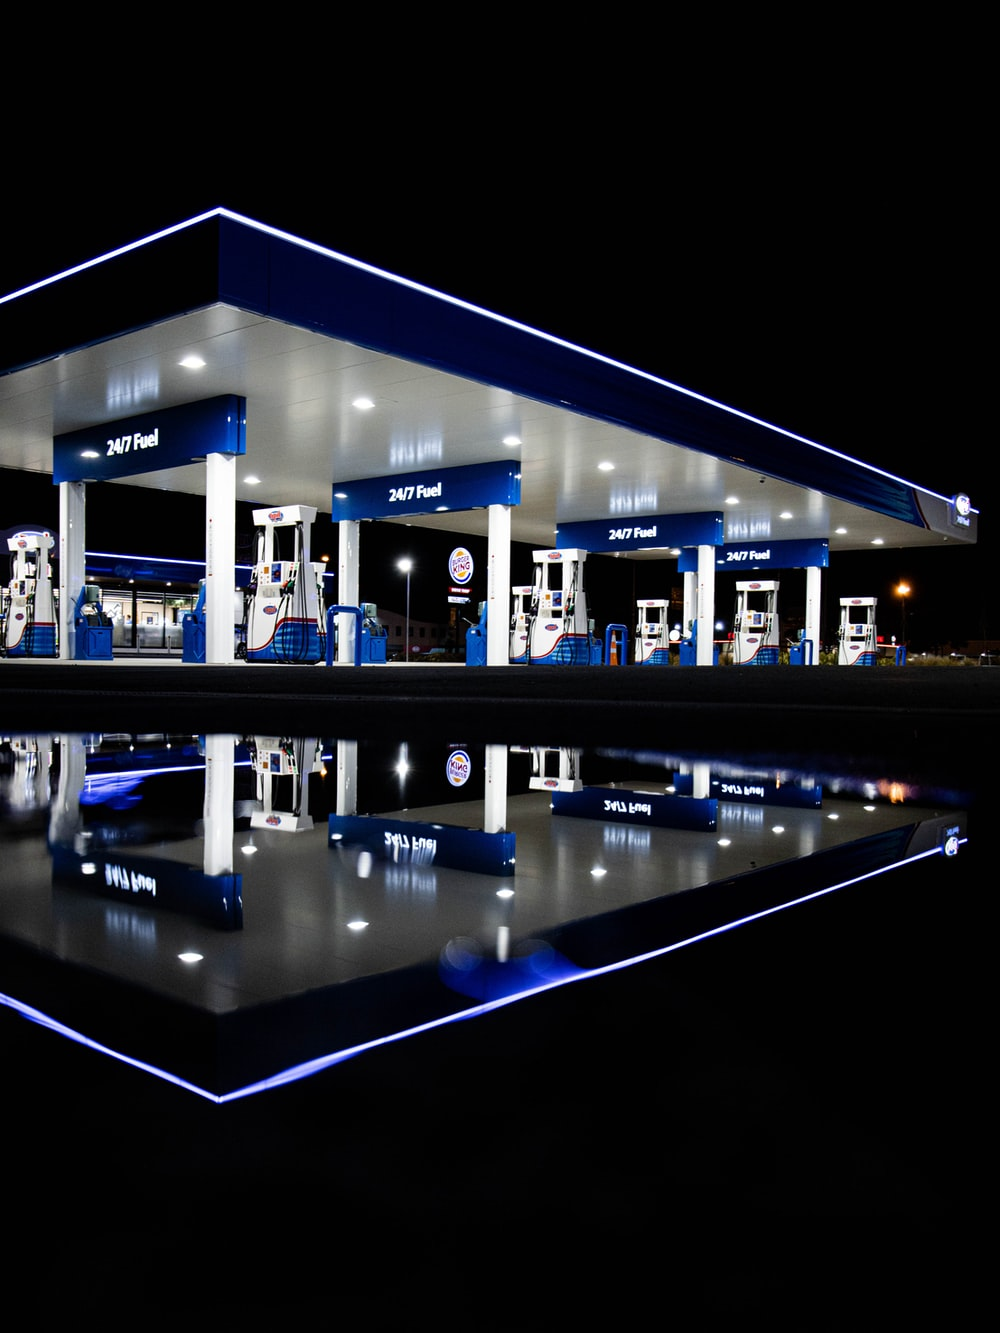 blue and white gasoline station